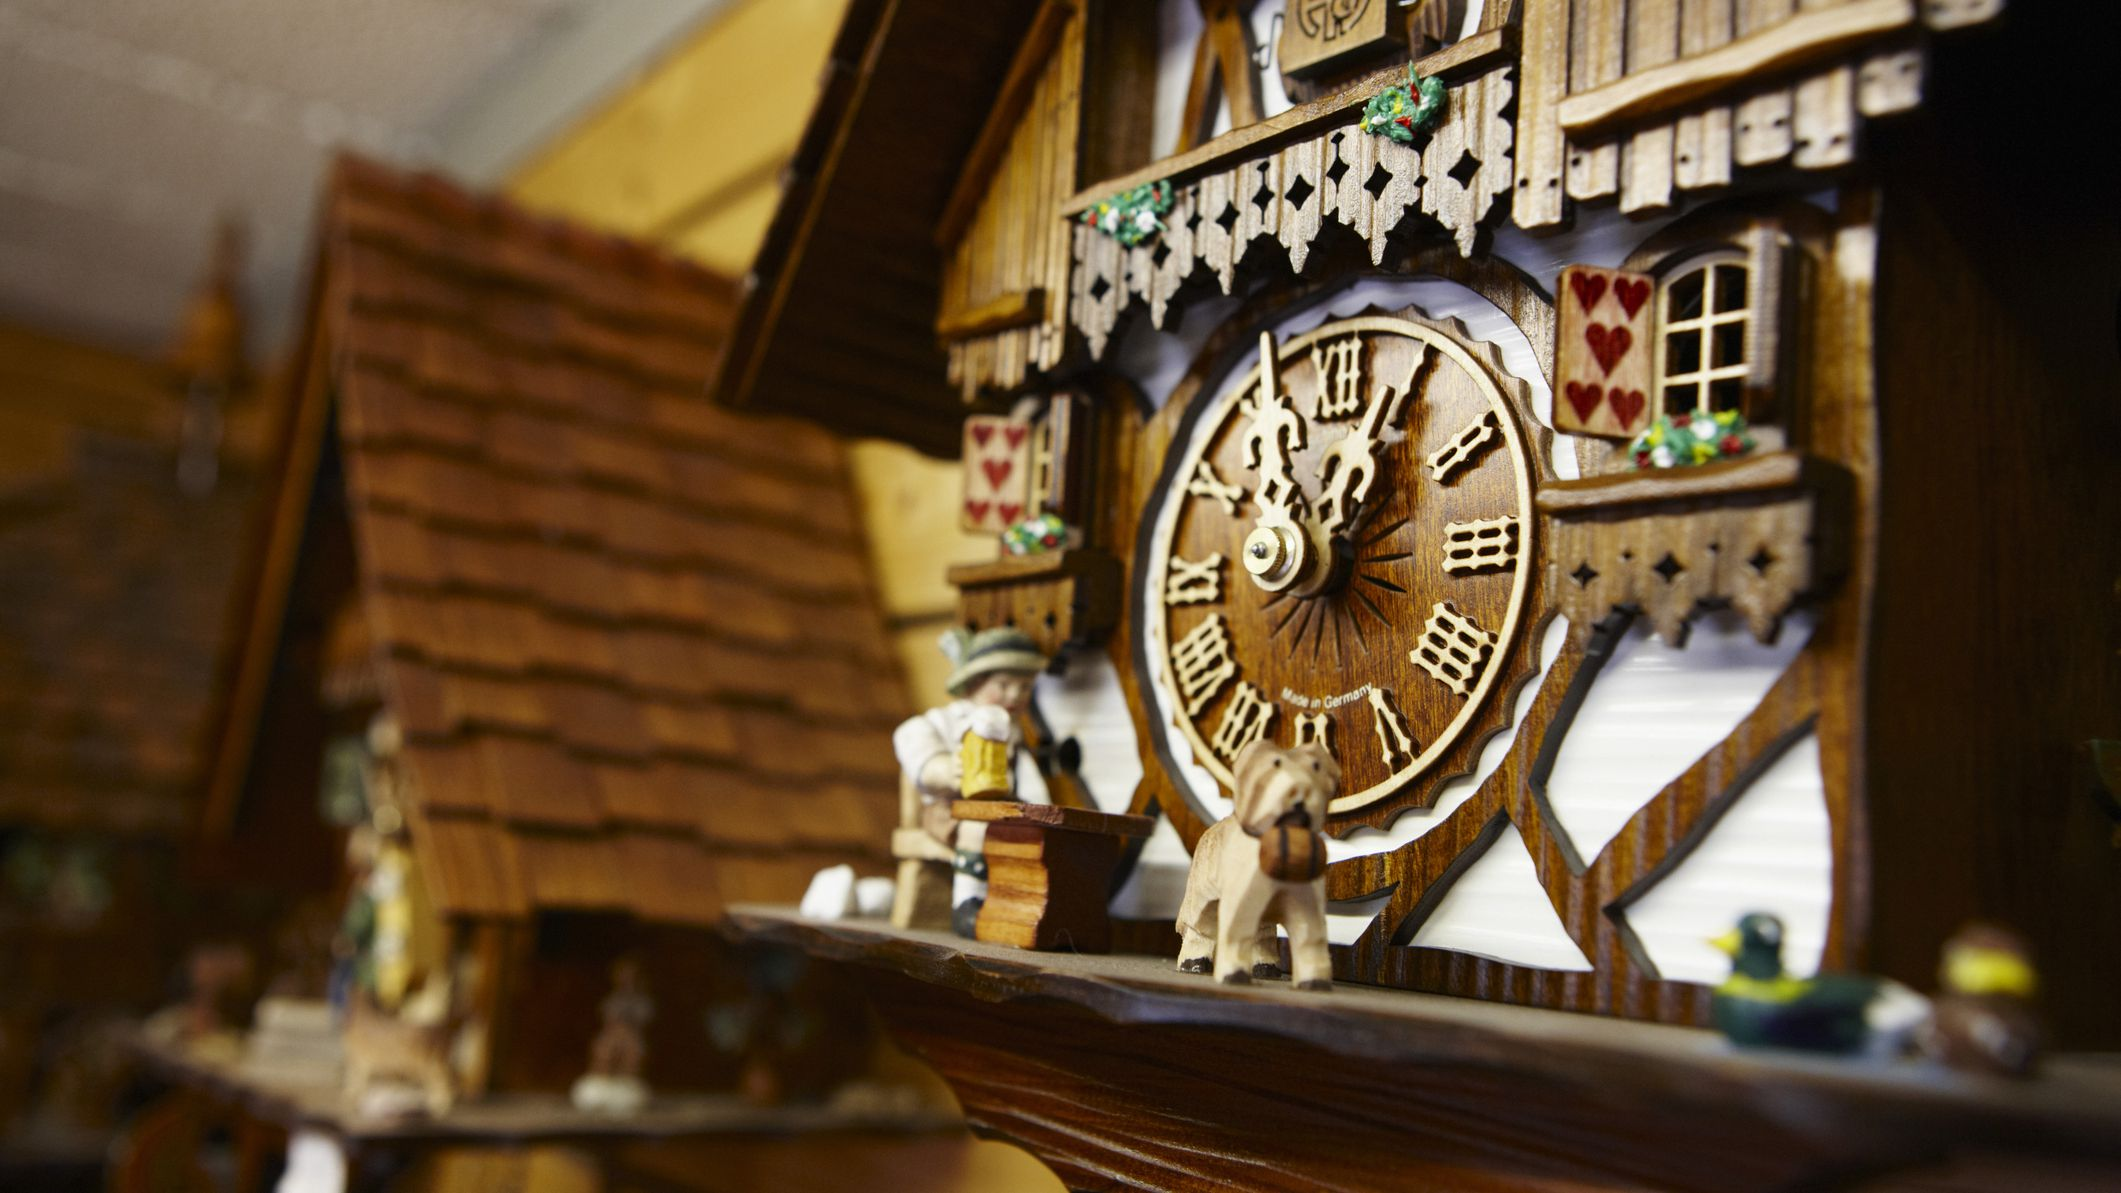 Clock worth cuckoo how my much is Antique Collectors